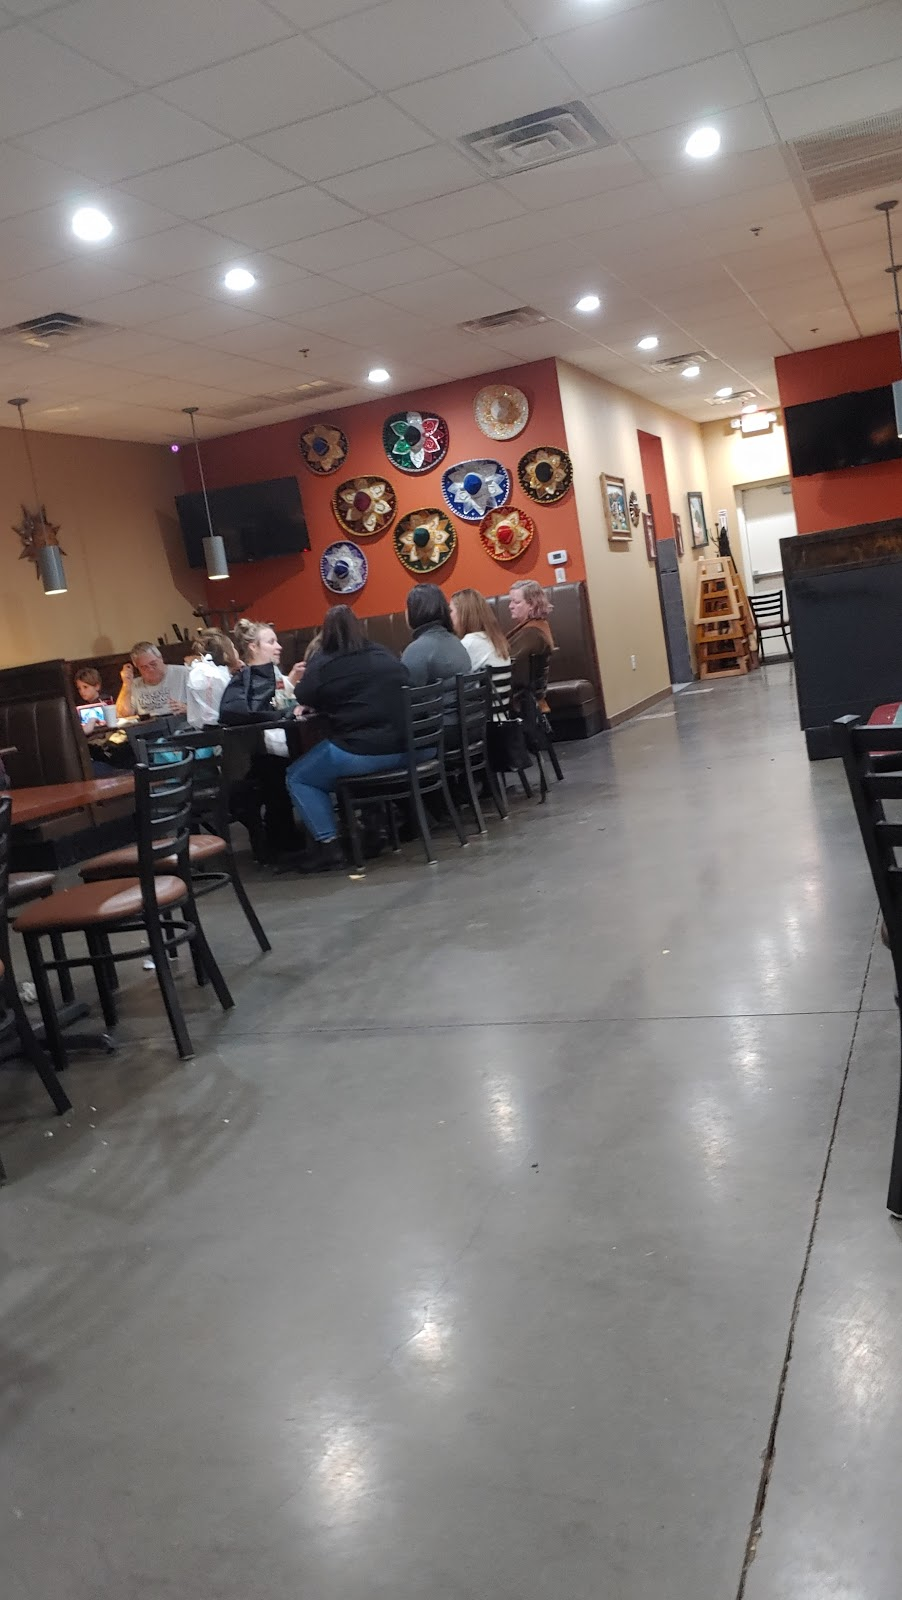 La Tapatia Mexican Restaurant and Bar - restaurant  | Photo 3 of 10 | Address: 651 N, US-183 Suite 310, Leander, TX 78641, USA | Phone: (512) 259-5019